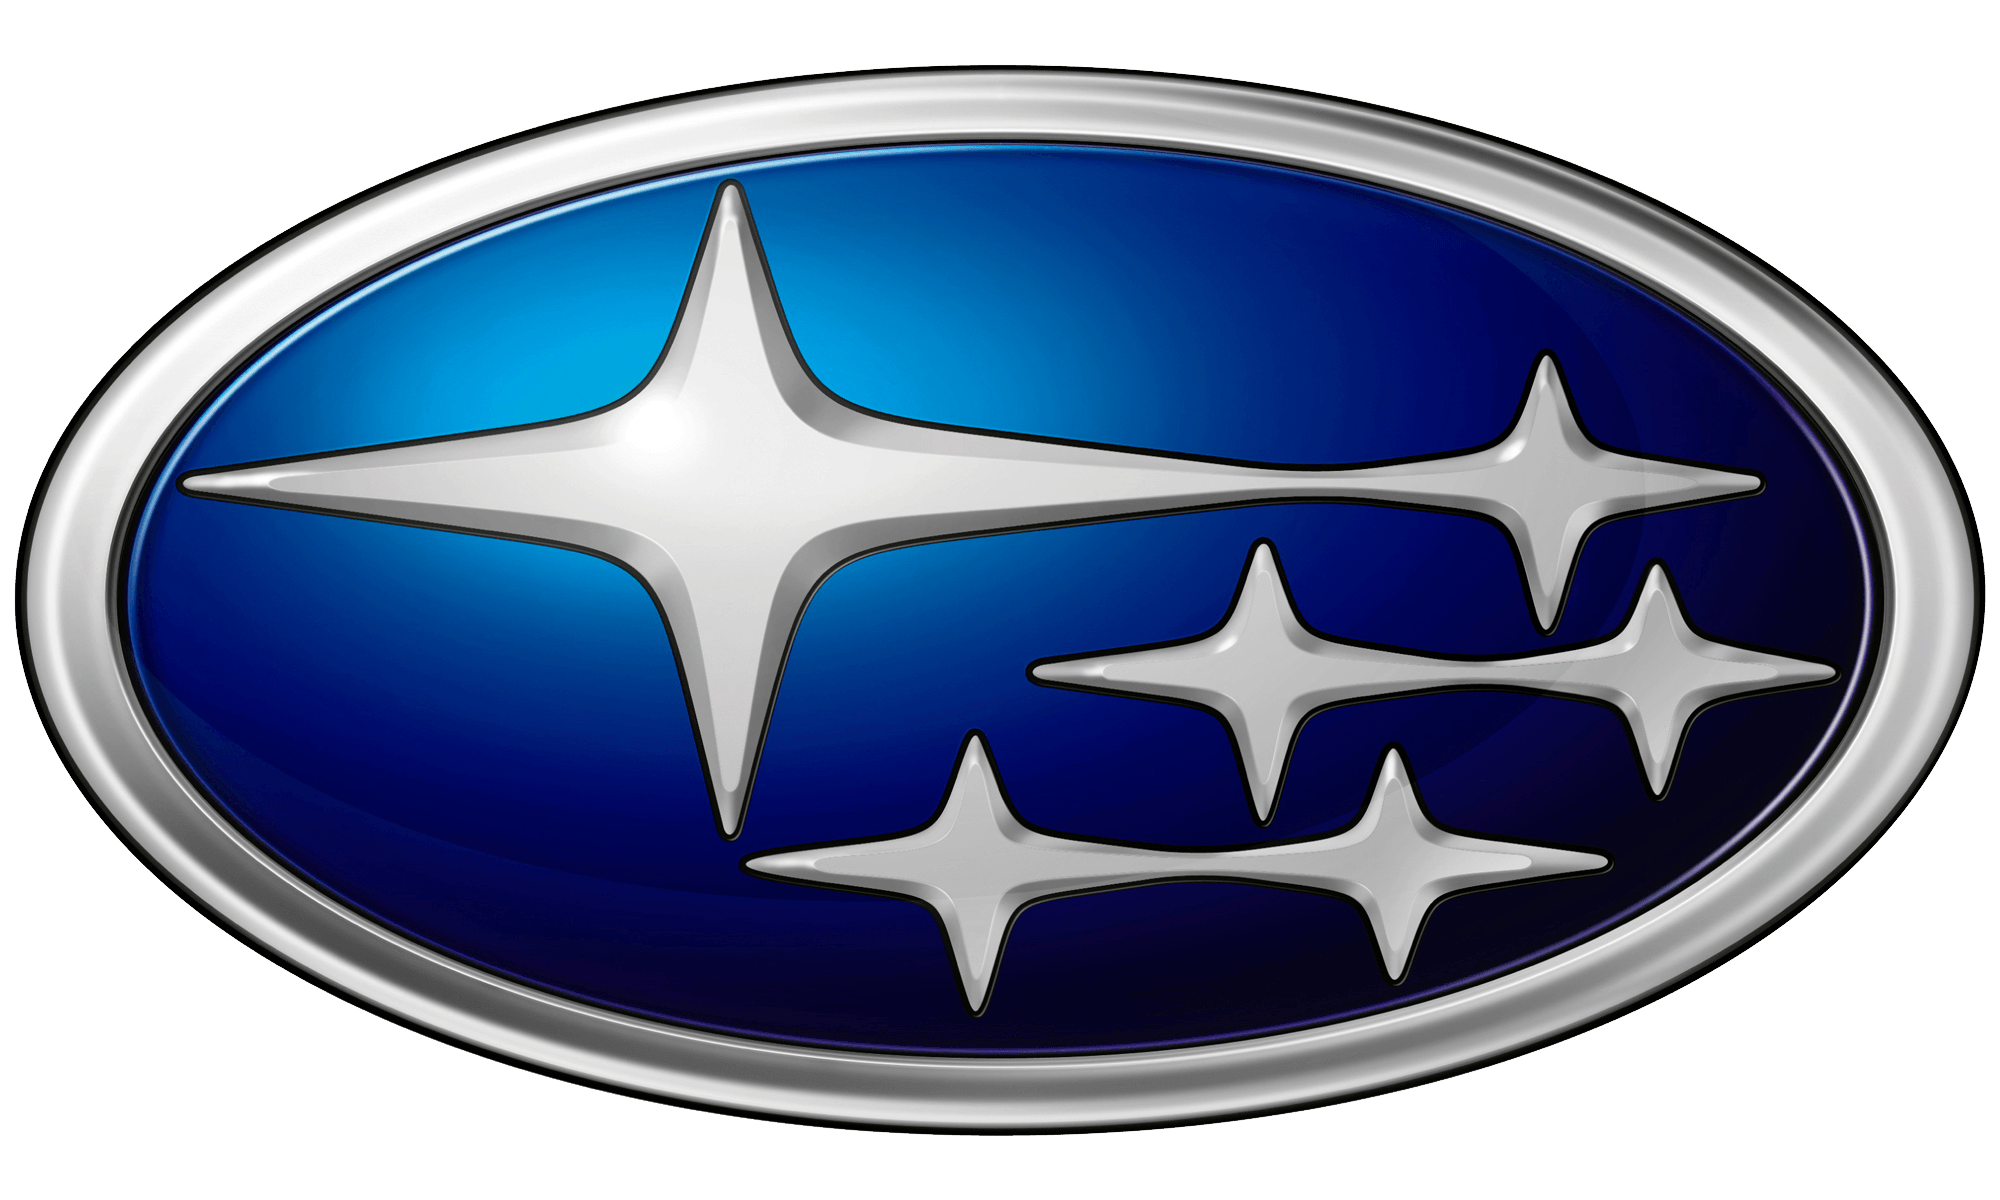 Blue and Silver Car Logo - Subaru Logo, Subaru Car Symbol Meaning and History | Car Brand Names.com